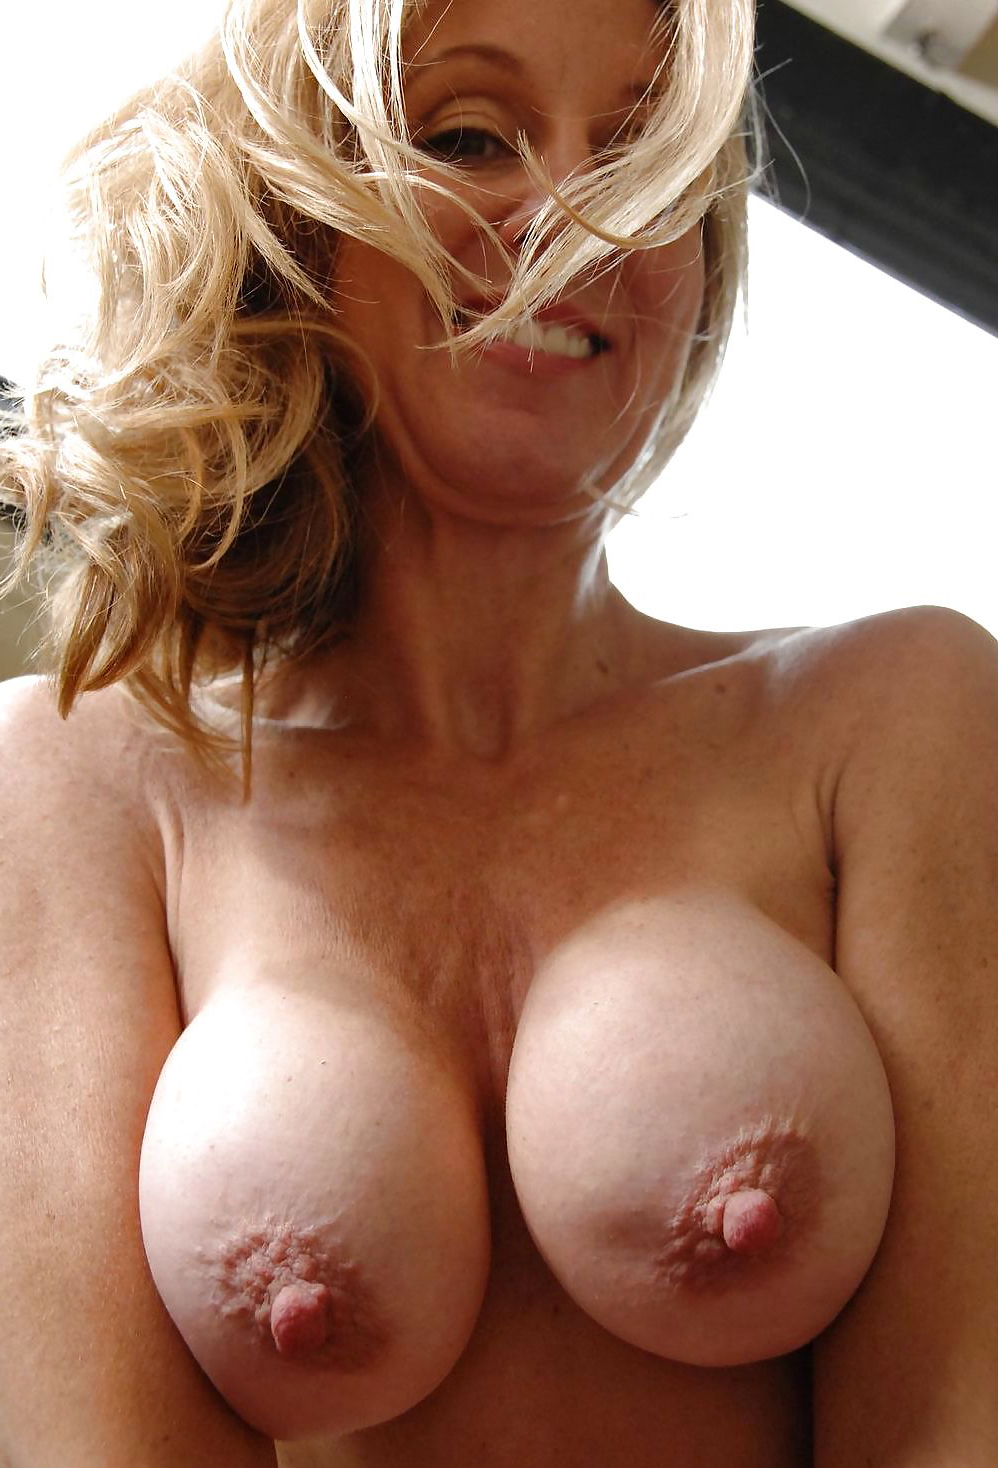 Something pics of women with long nipples for the